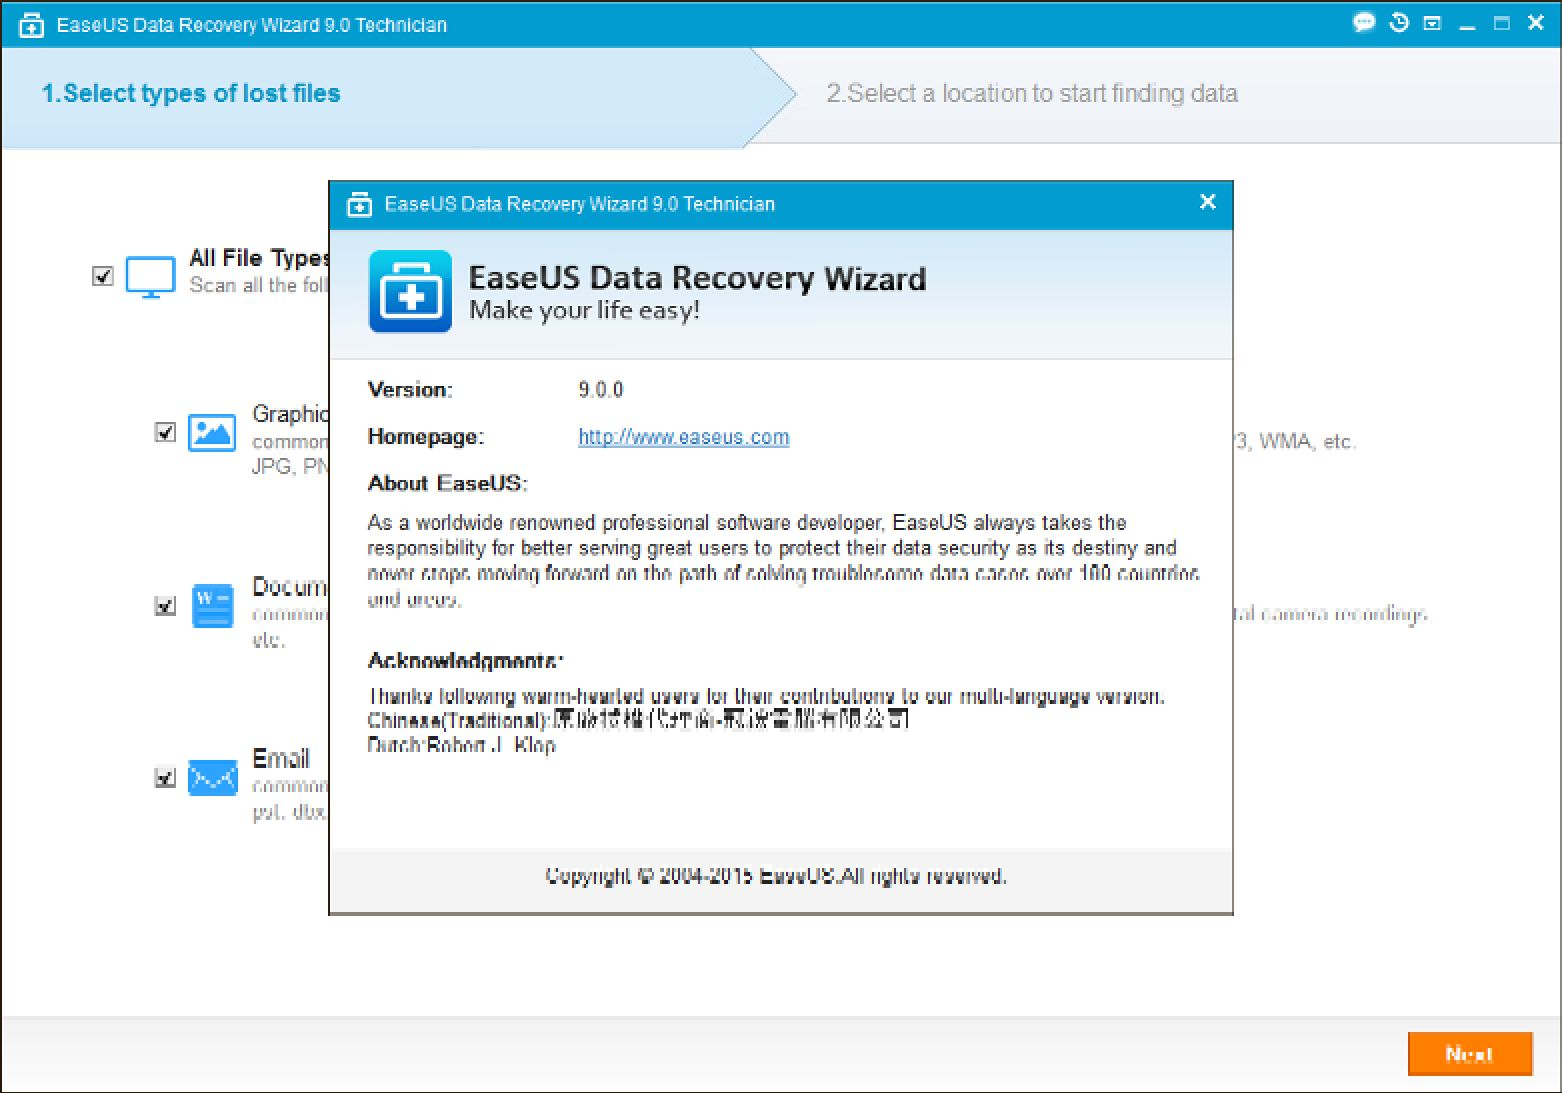 crack of easeus data recovery